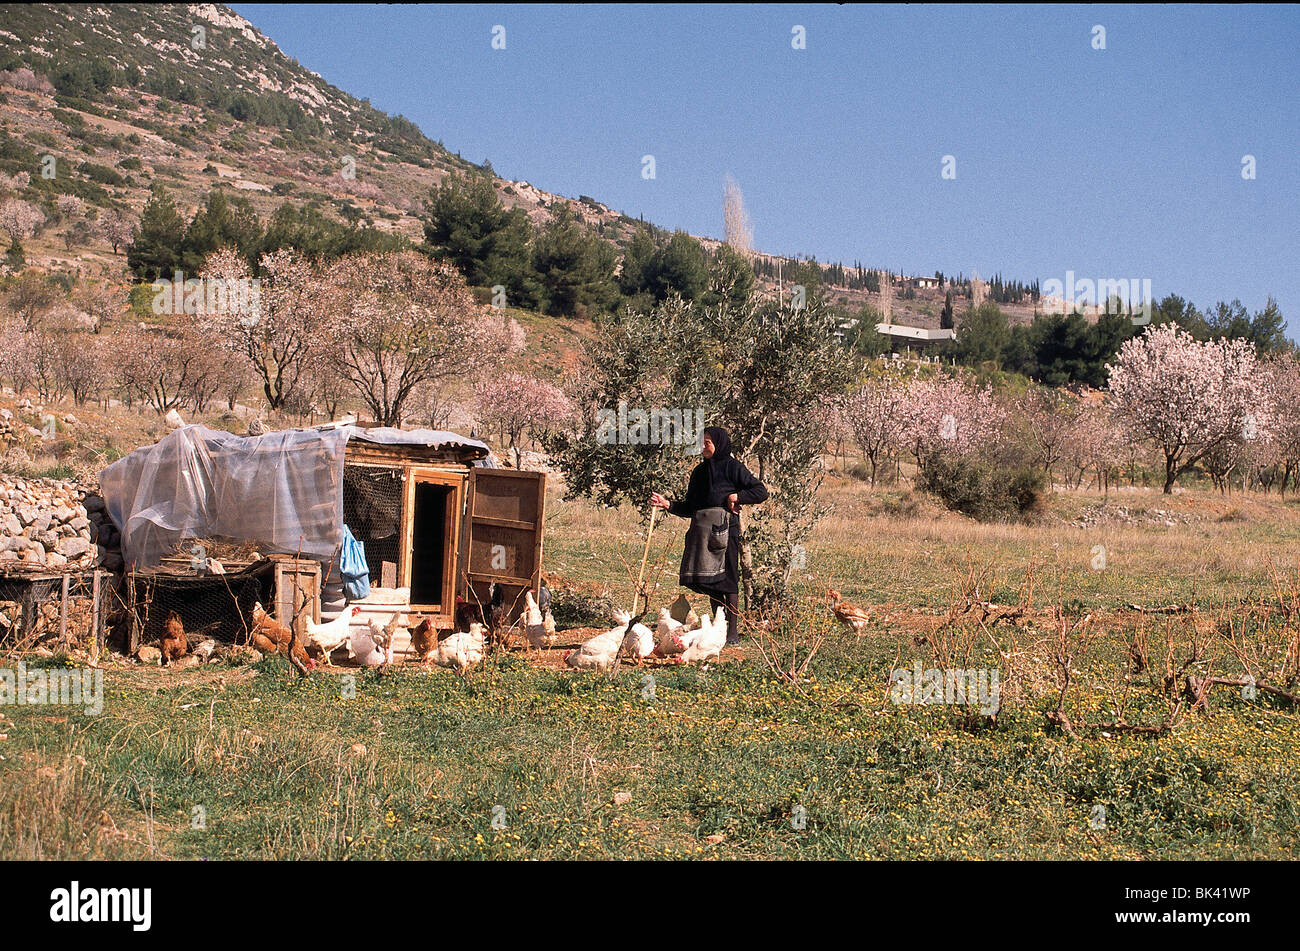 Woman tending to a flock of chickens in rural Greece - Stock Image